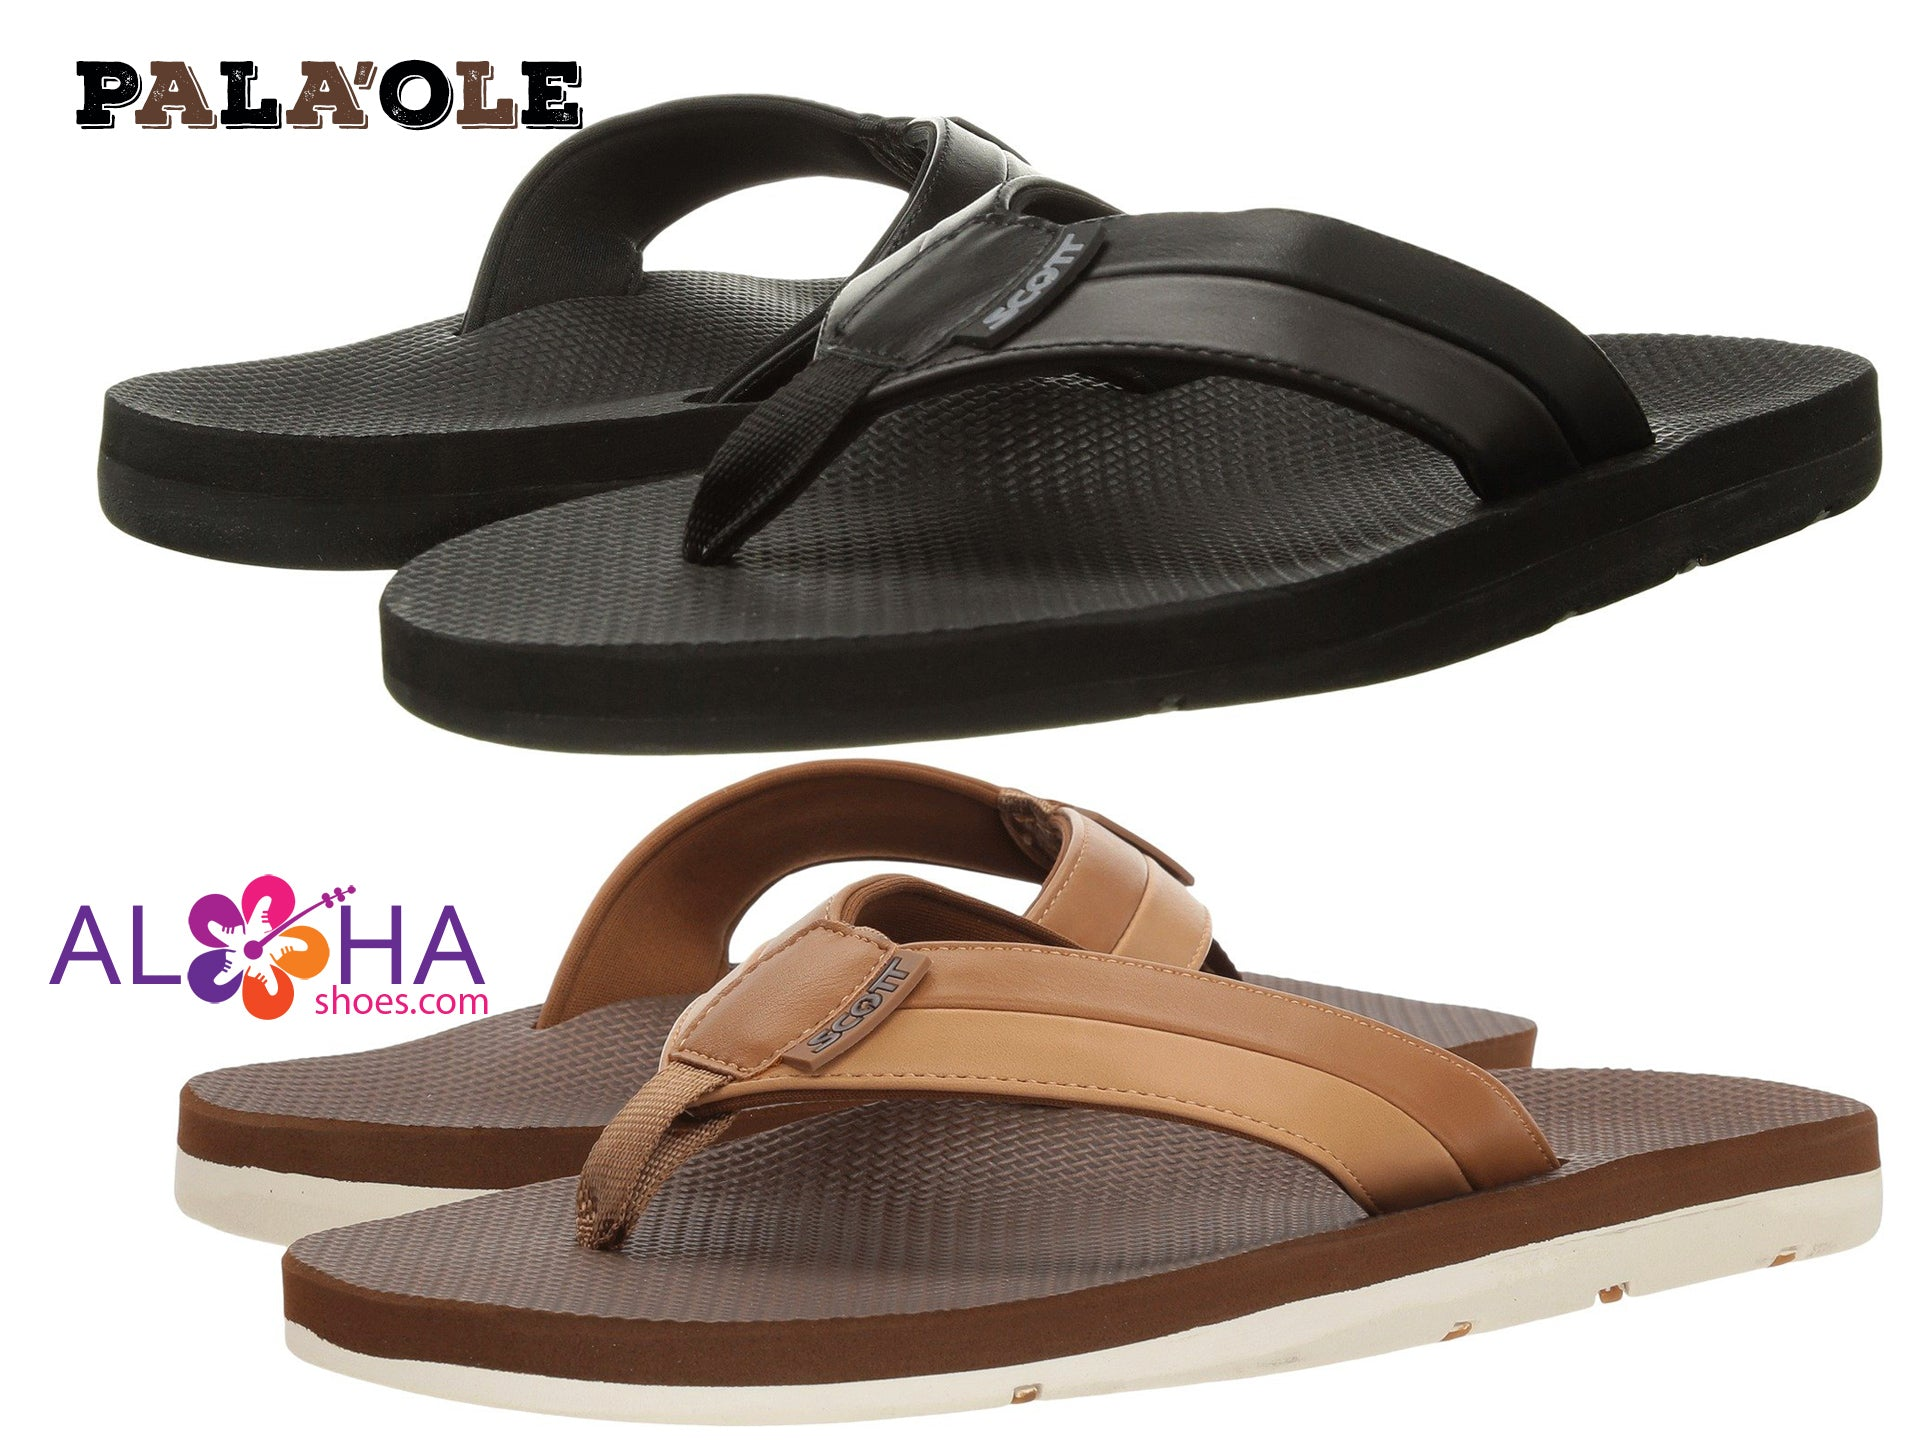 Men's Scott Palaole Custom Sandals | Two-Toned Durable Straps- AlohaShoes.com